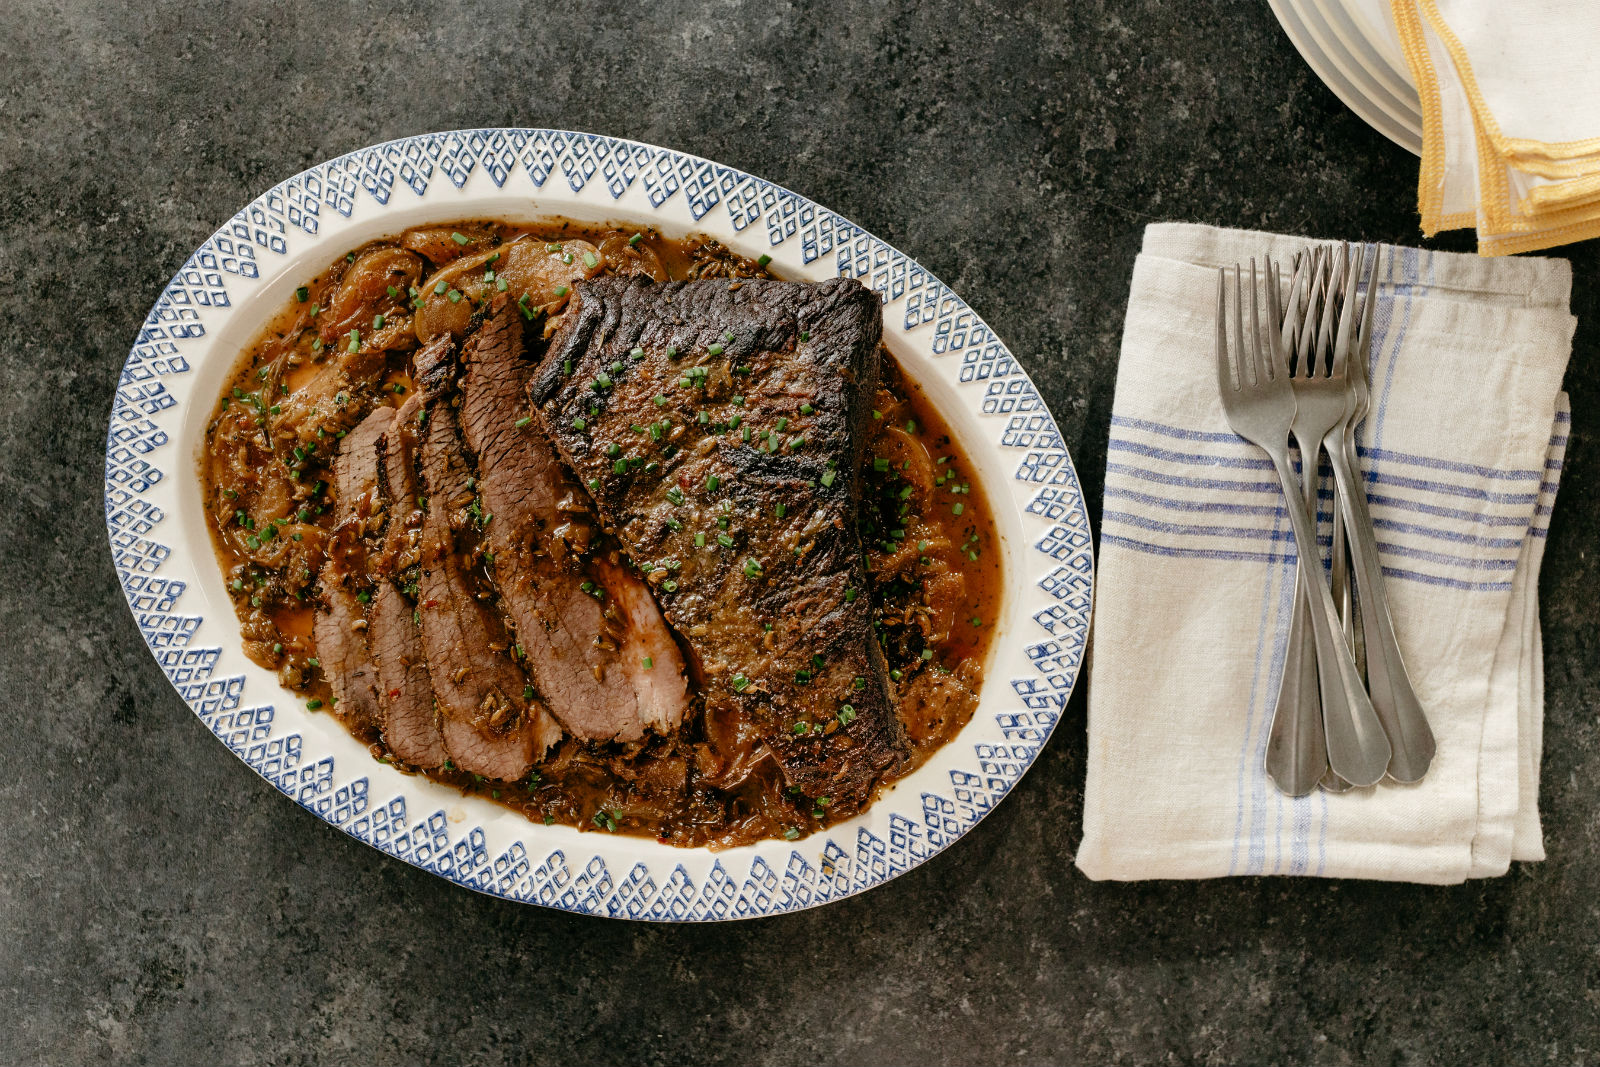 Molly Yeh's Apple Cider Brisket Recipe